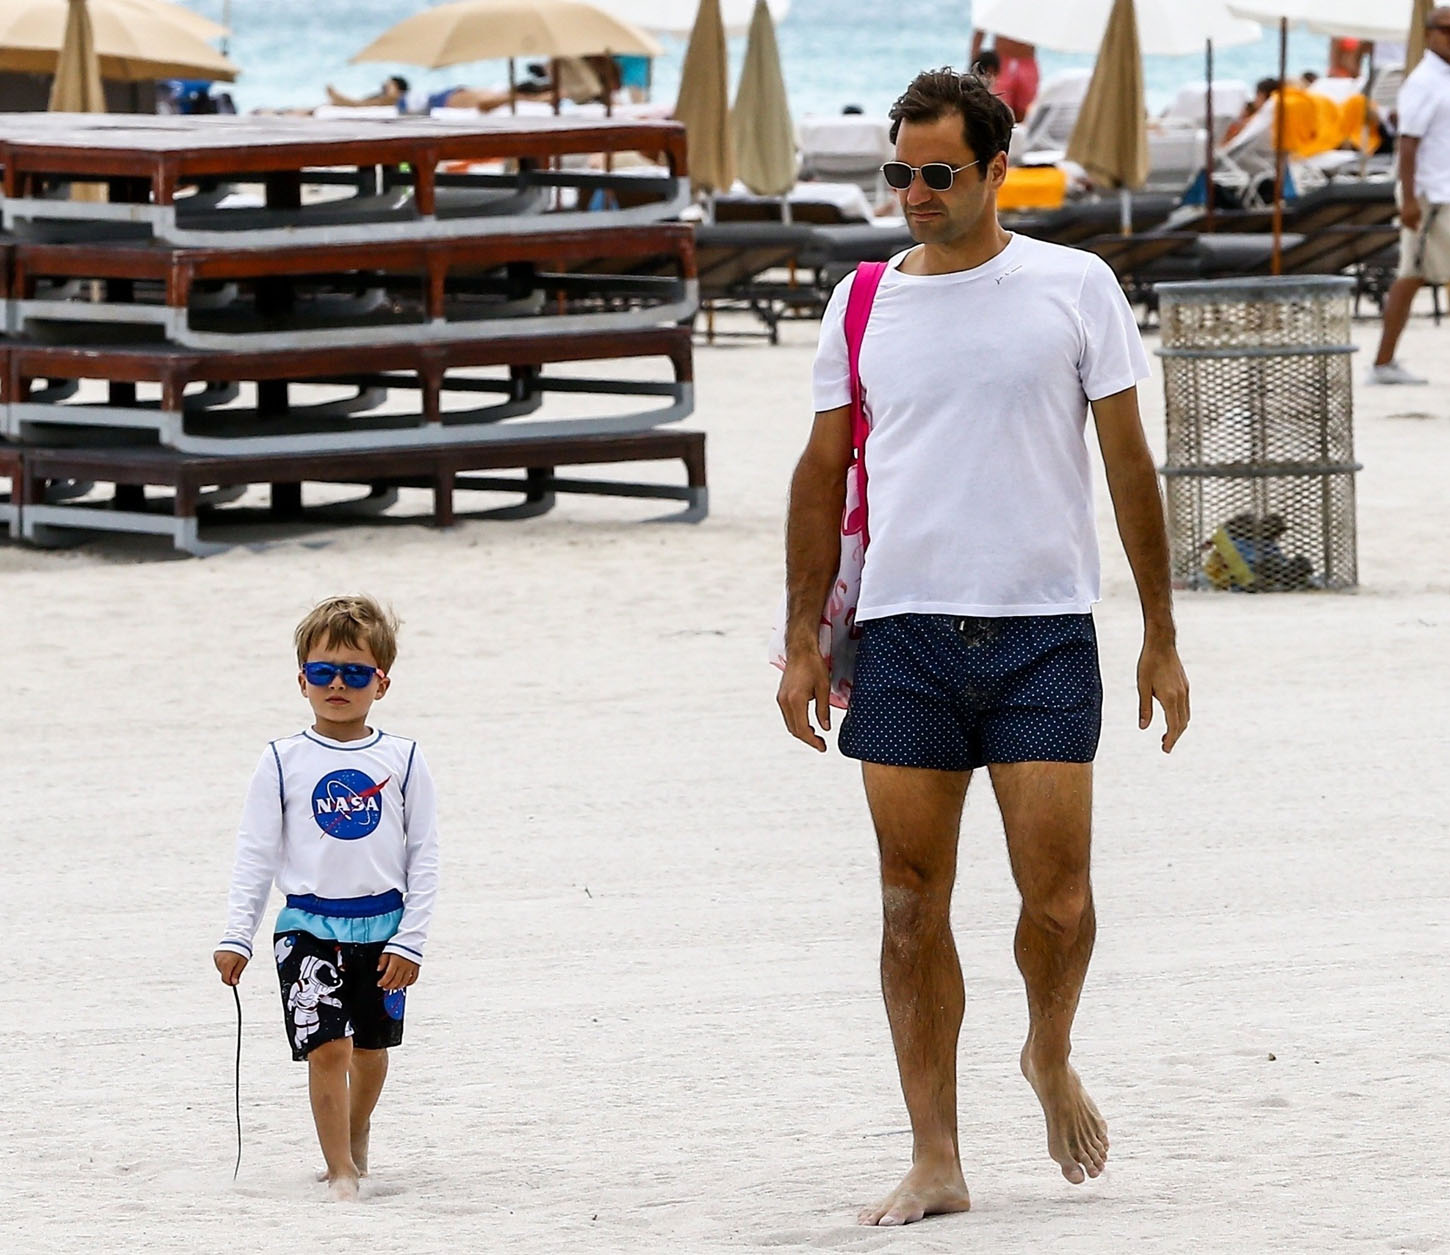 Miami Beach, FL  - Tennis champion Roger Federer is spotted leaving with one of his twin boys after enjoying a sunny day on the beach in Miami, Florida.  Pictured: Roger Federer  BACKGRID USA 21 MARCH 2018, Image: 366560534, License: Rights-managed, Restrictions: , Model Release: no, Credit line: Profimedia, AKM-GSI